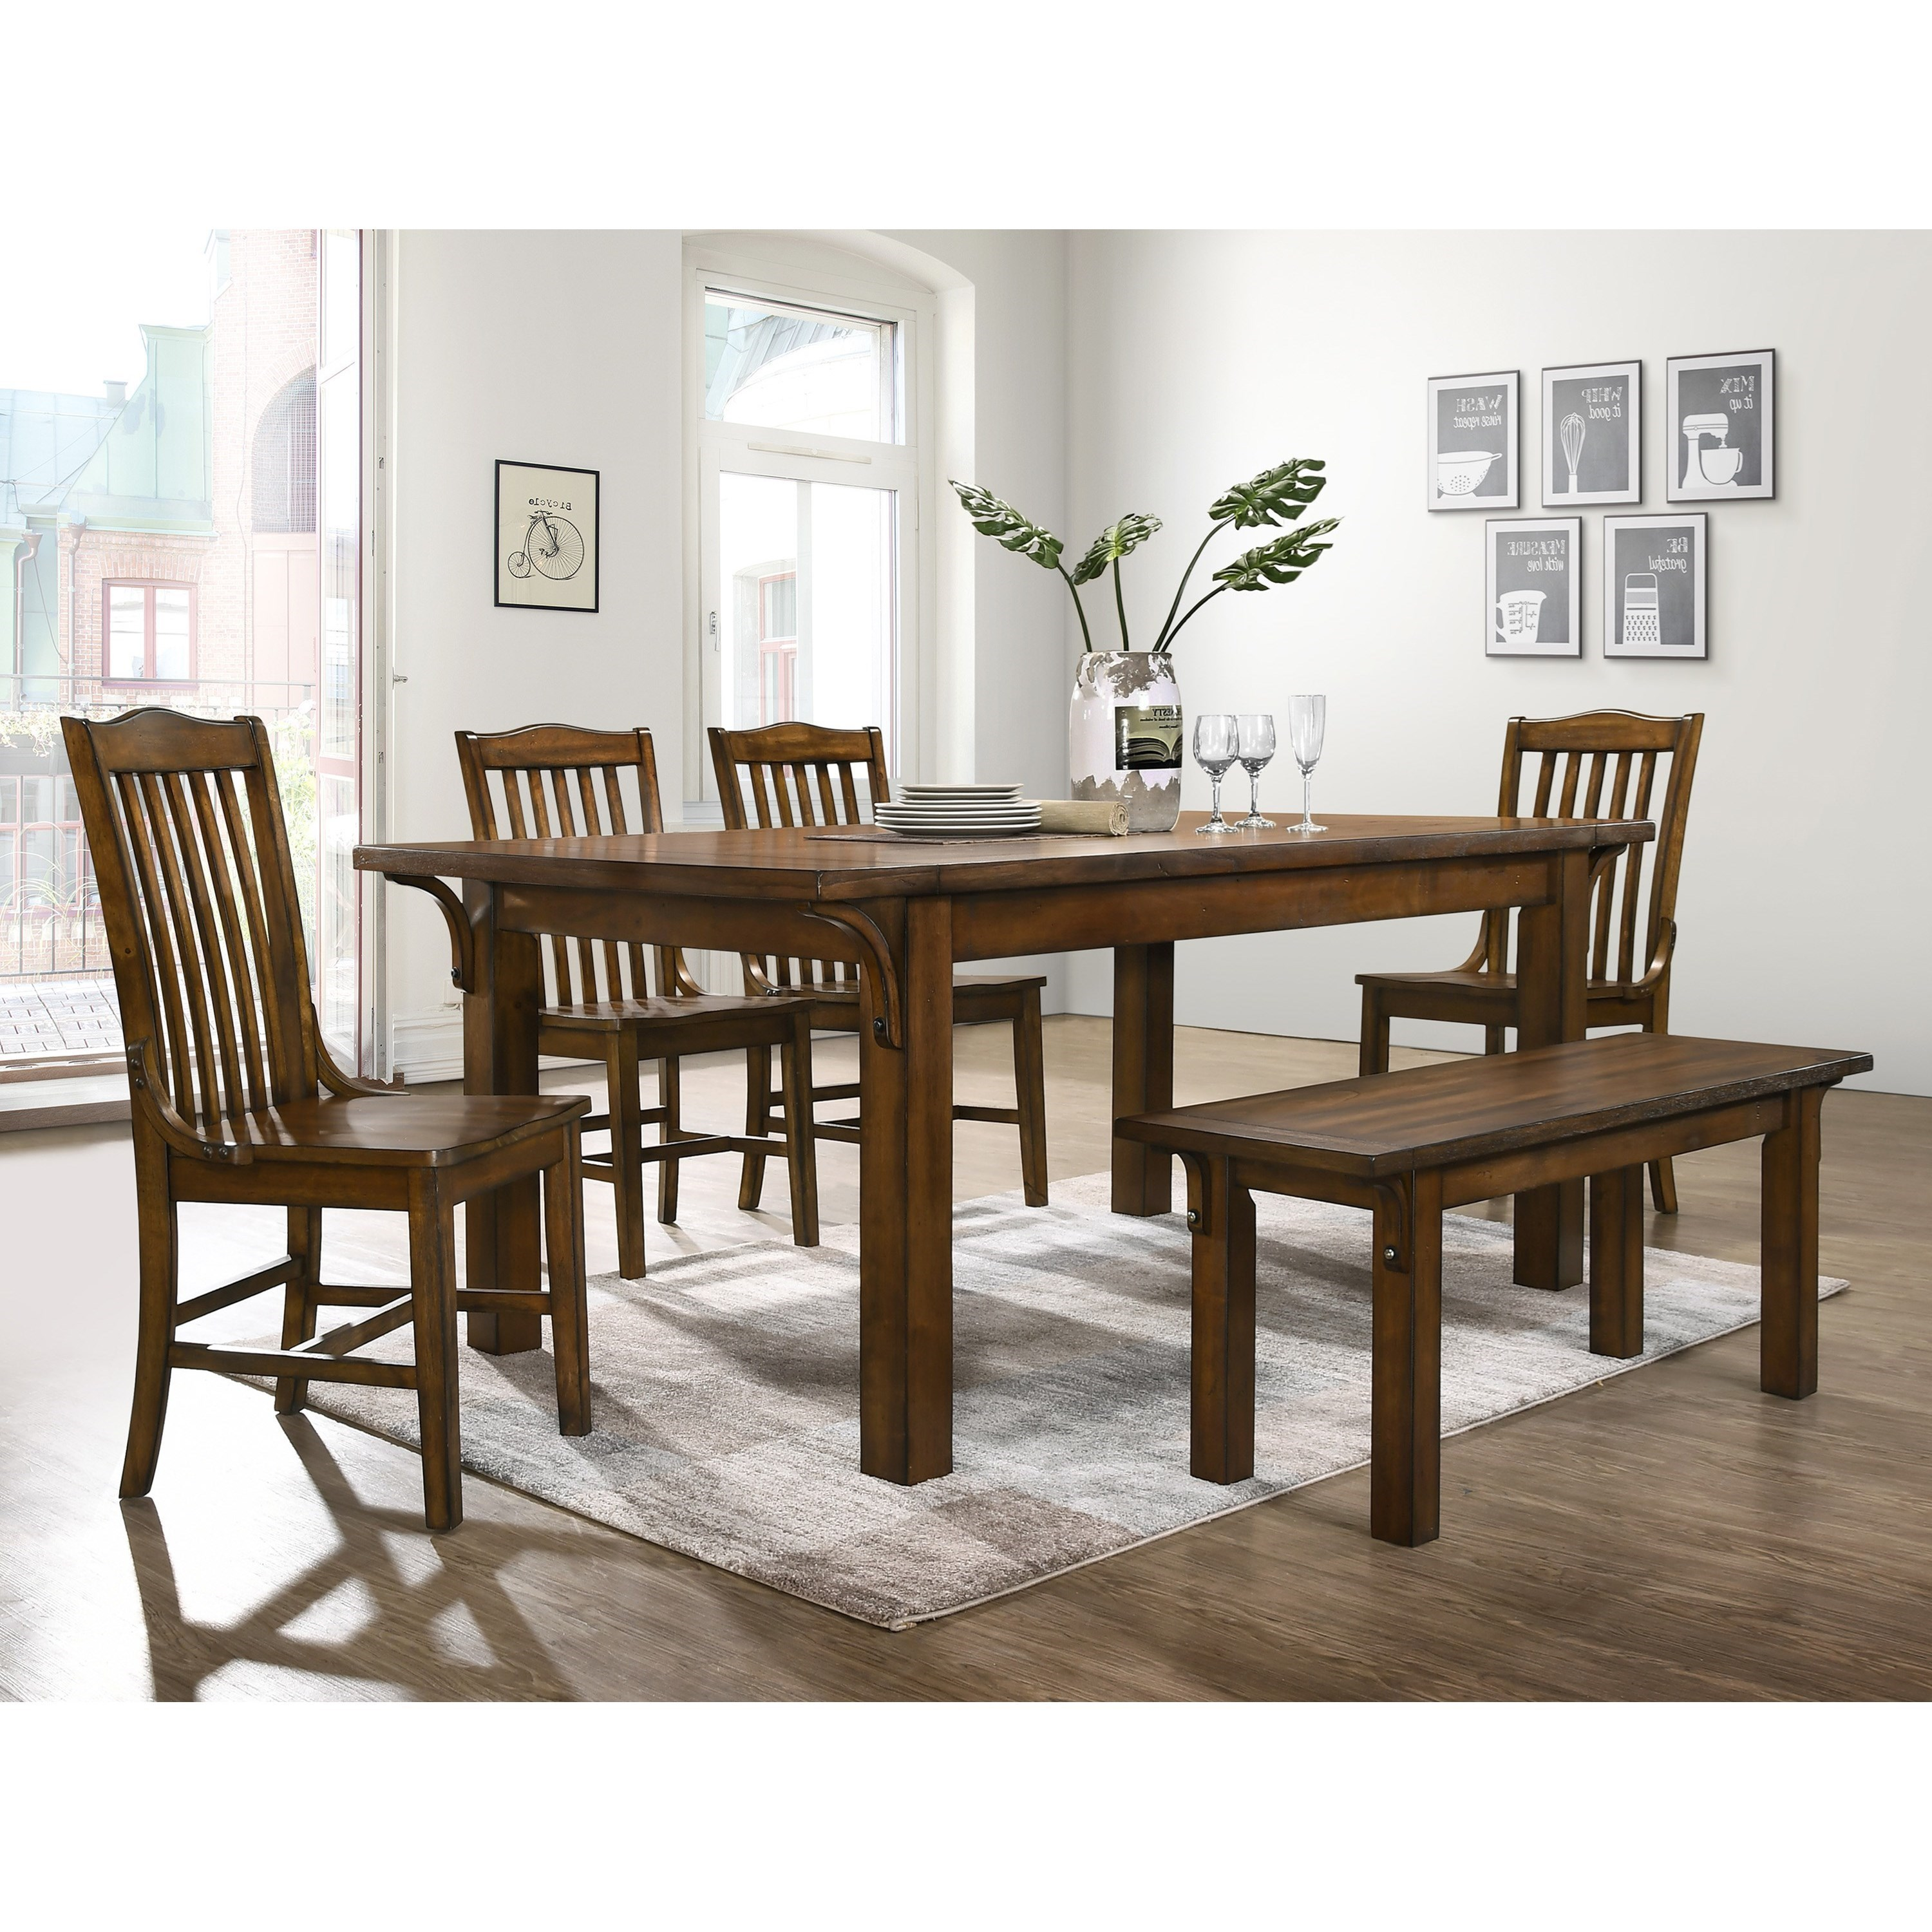 Crown mark lucille traditional six piece dining set with bench